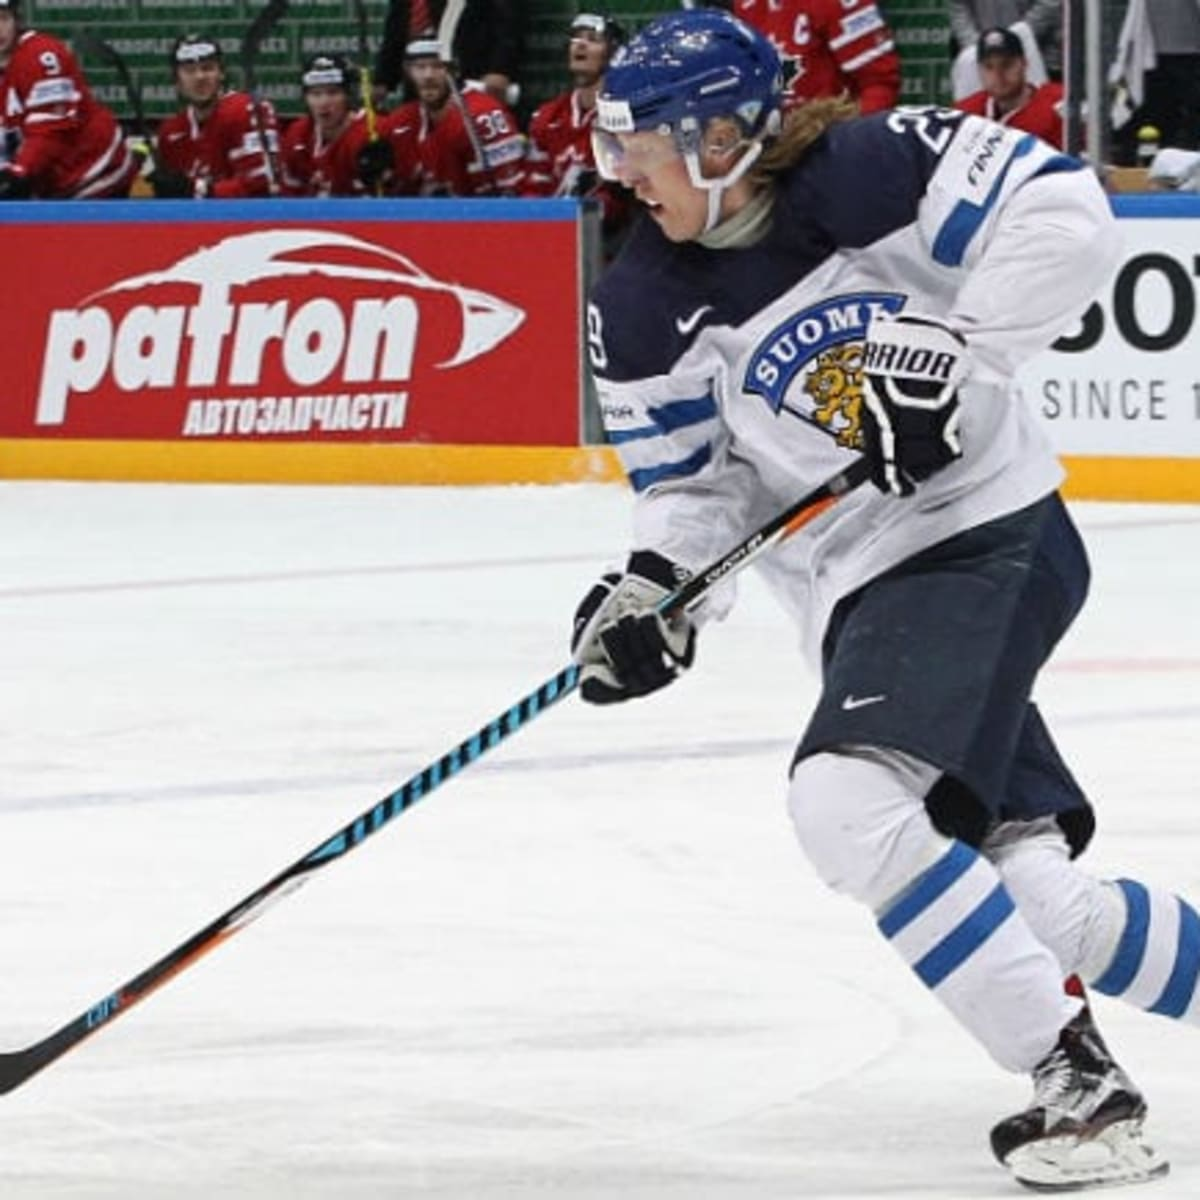 More Patrik Laine Finland Gives Us What We Want With World Cup Roster The Hockey News On Sports Illustrated